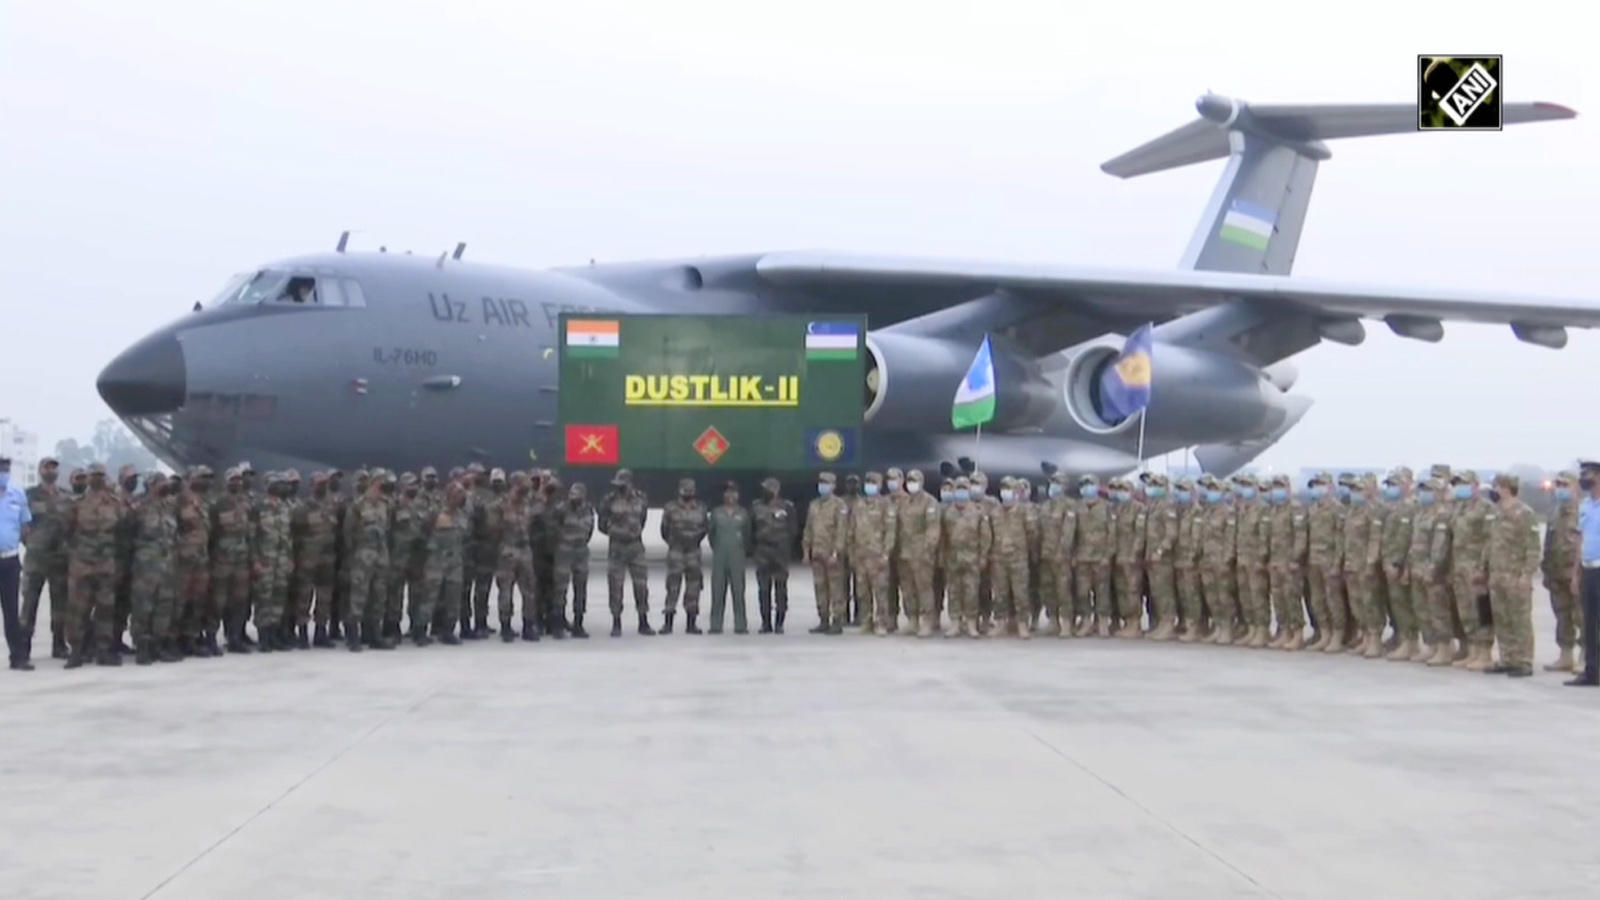 indo-uzbek-joint-exercise-dustlik-ll-uzbekistan-army-contingent-arrives-in-delhi